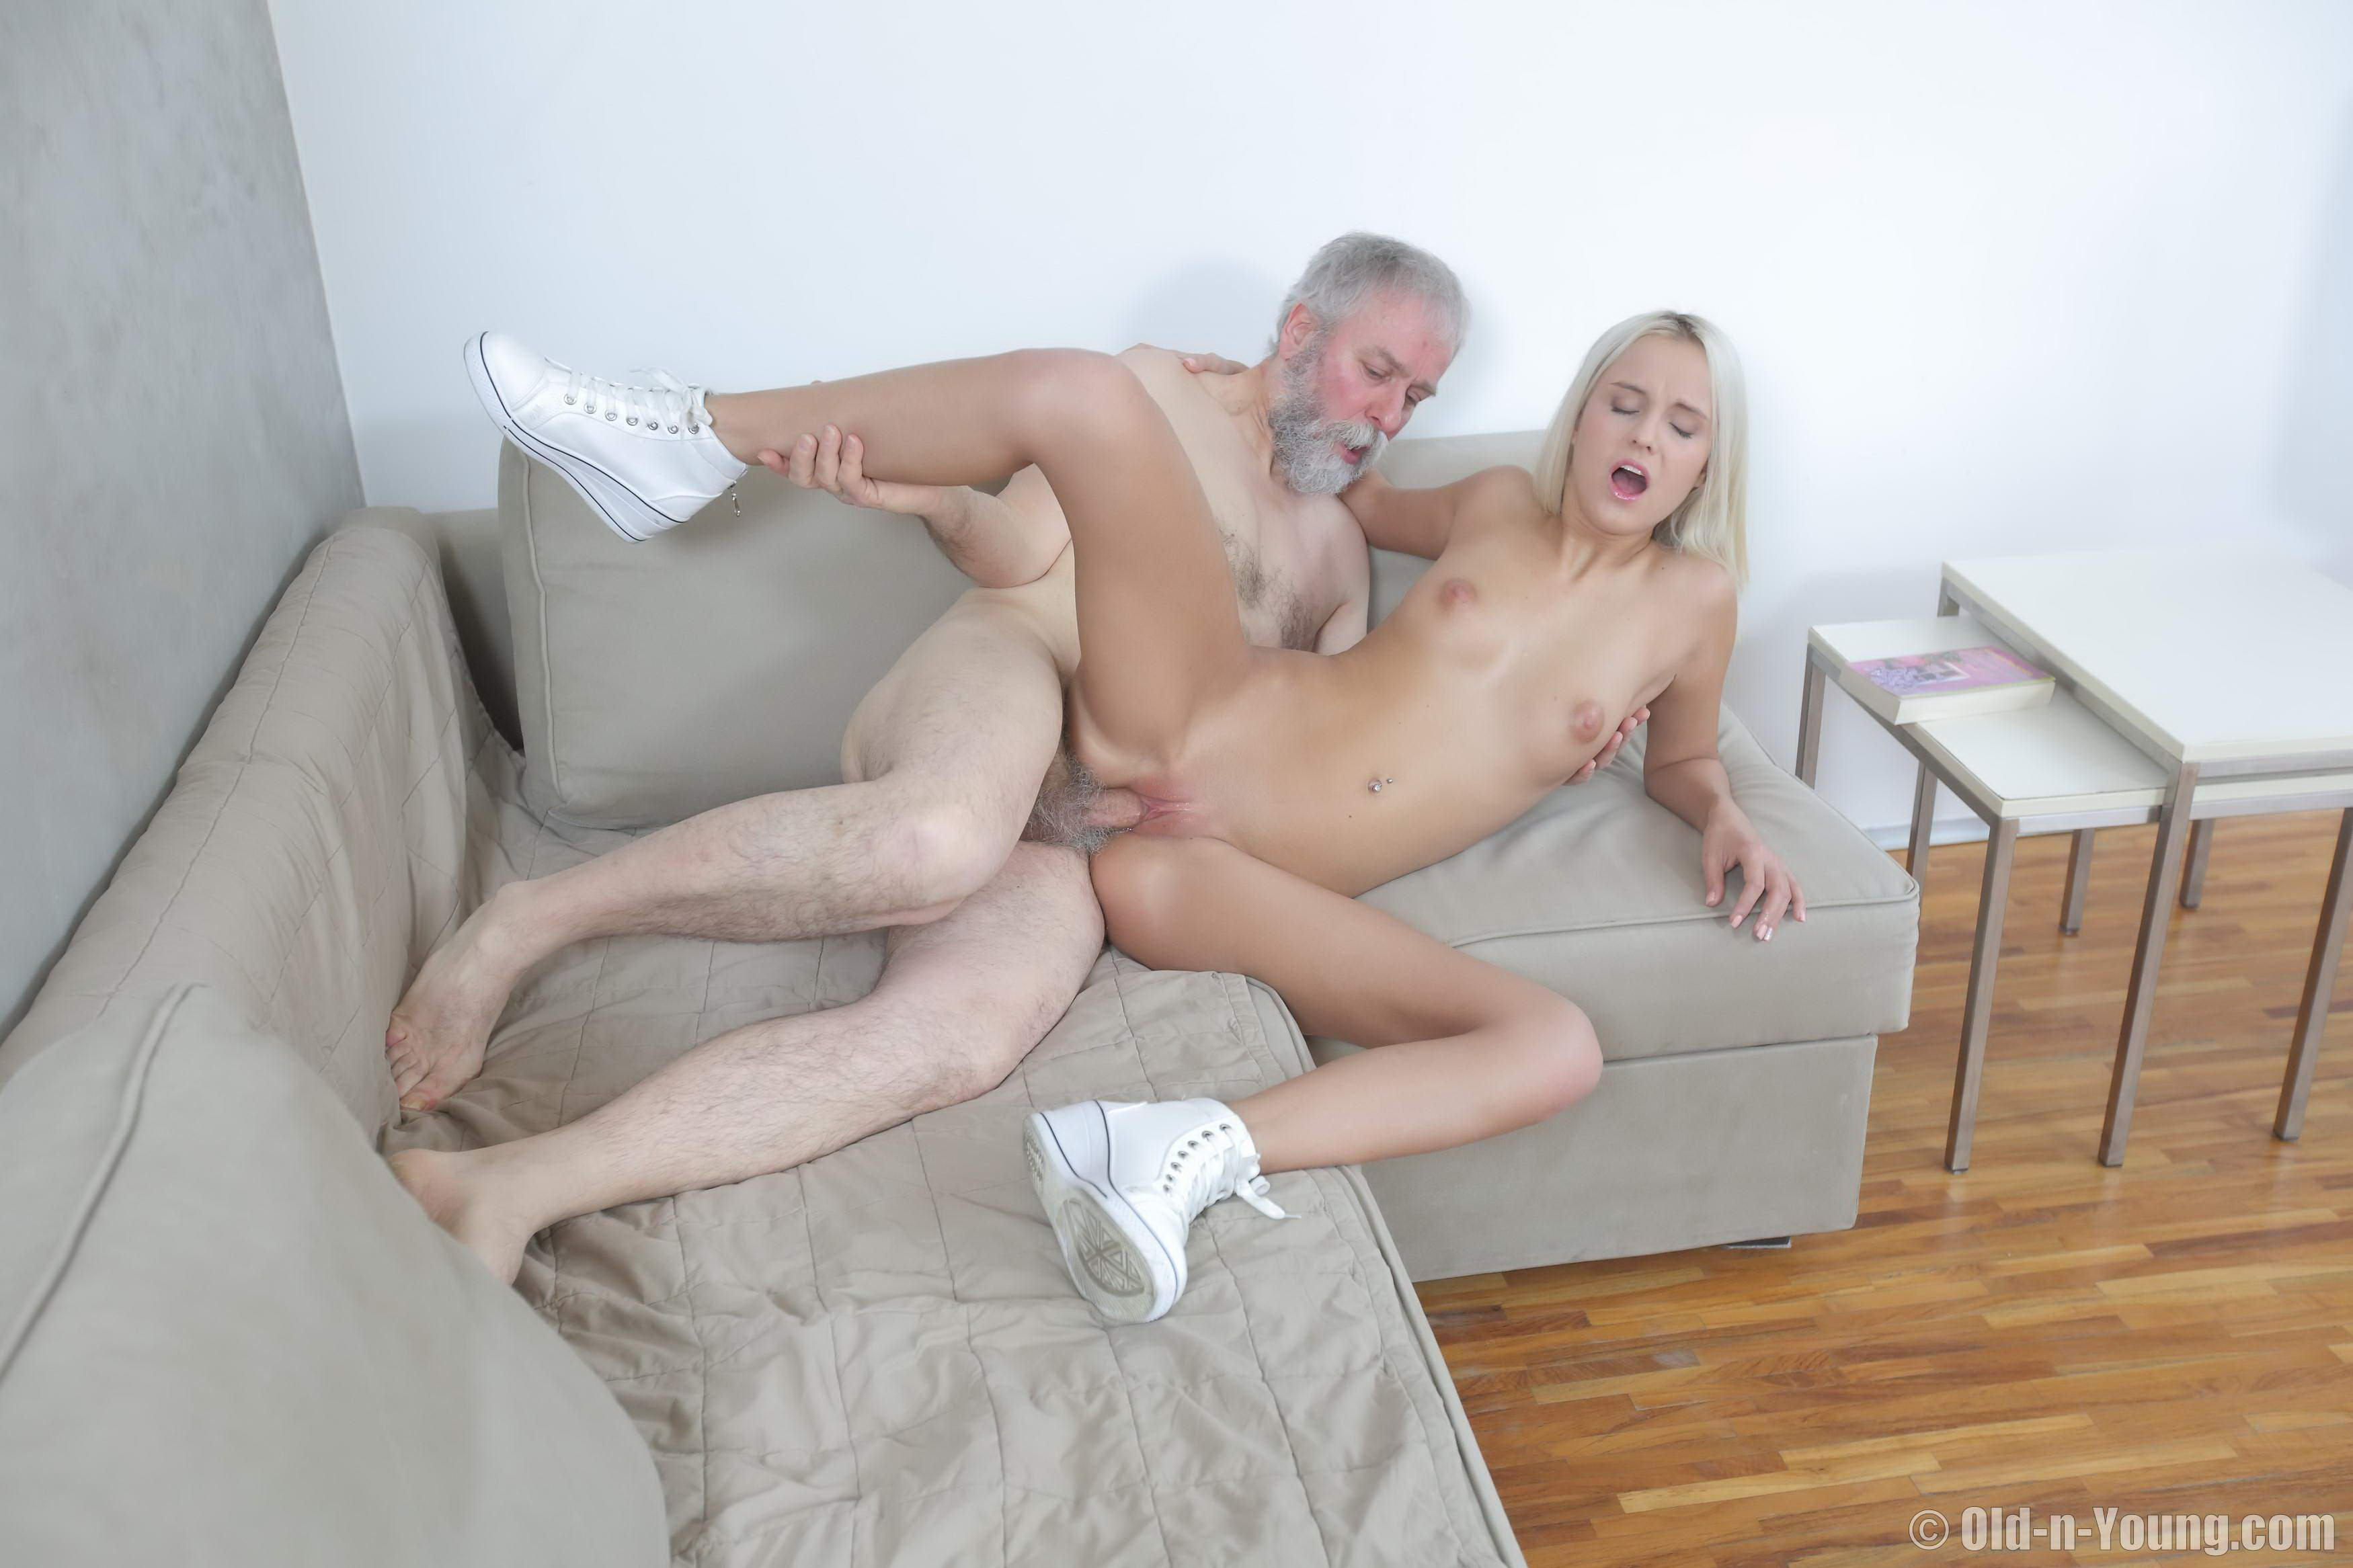 Teens and old people having sex